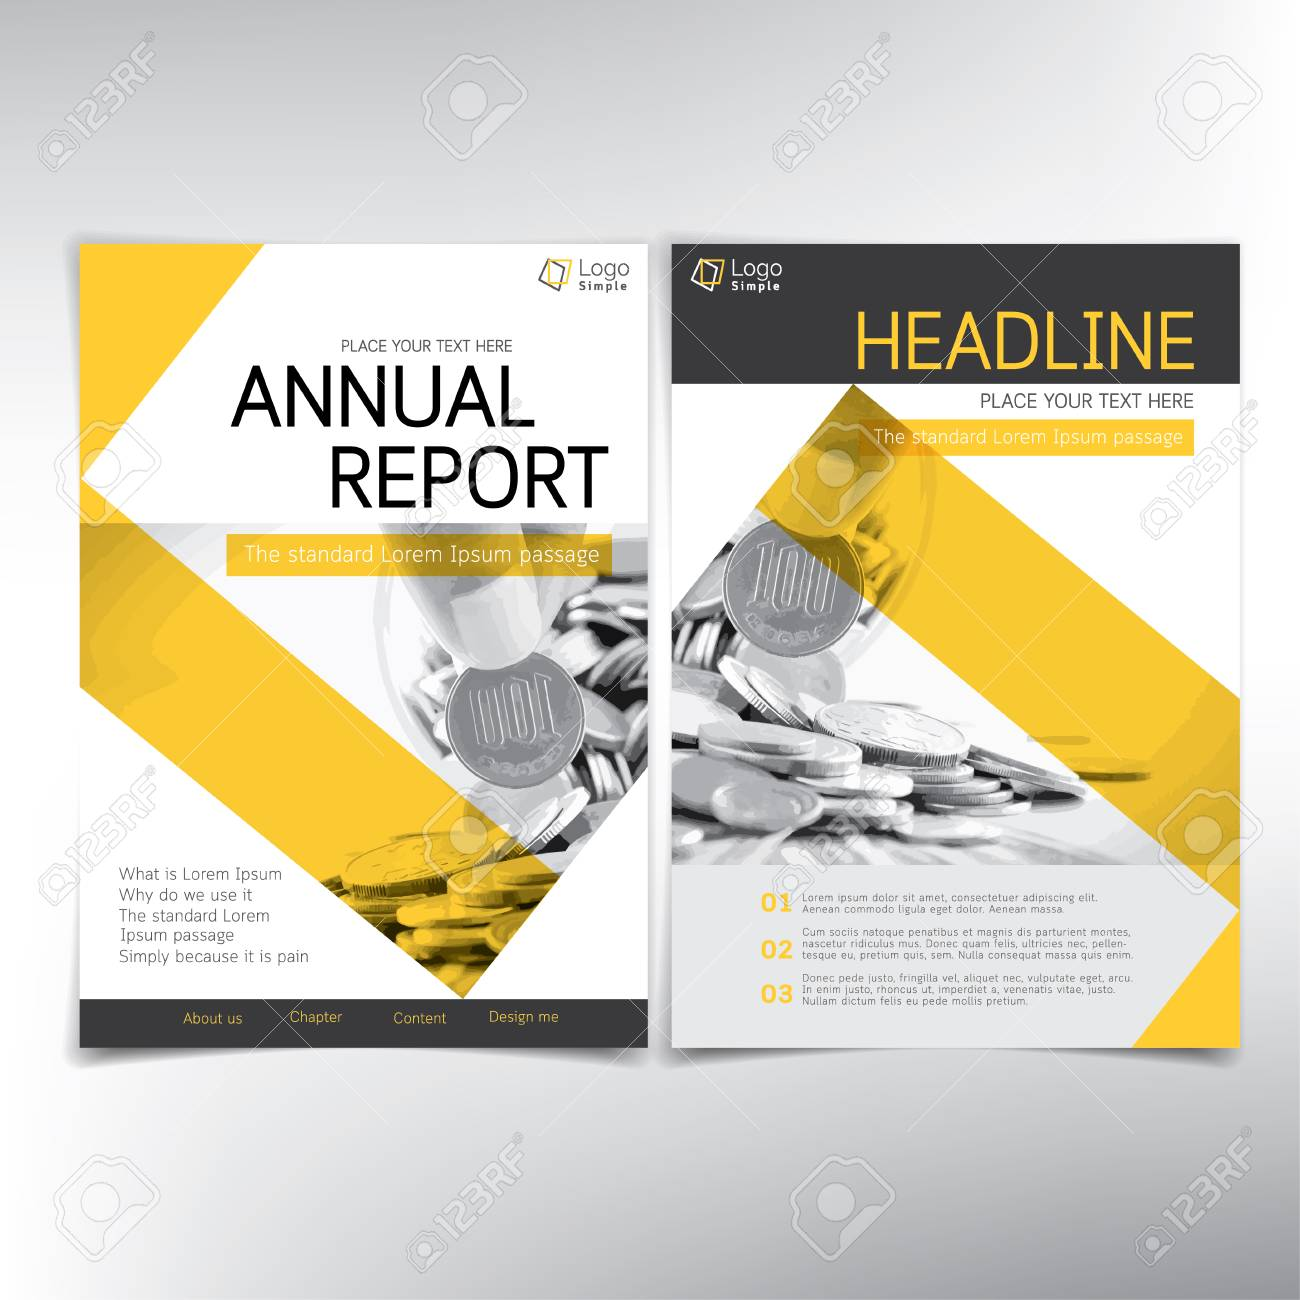 modern business and financial cover page vector template can be used for annual report